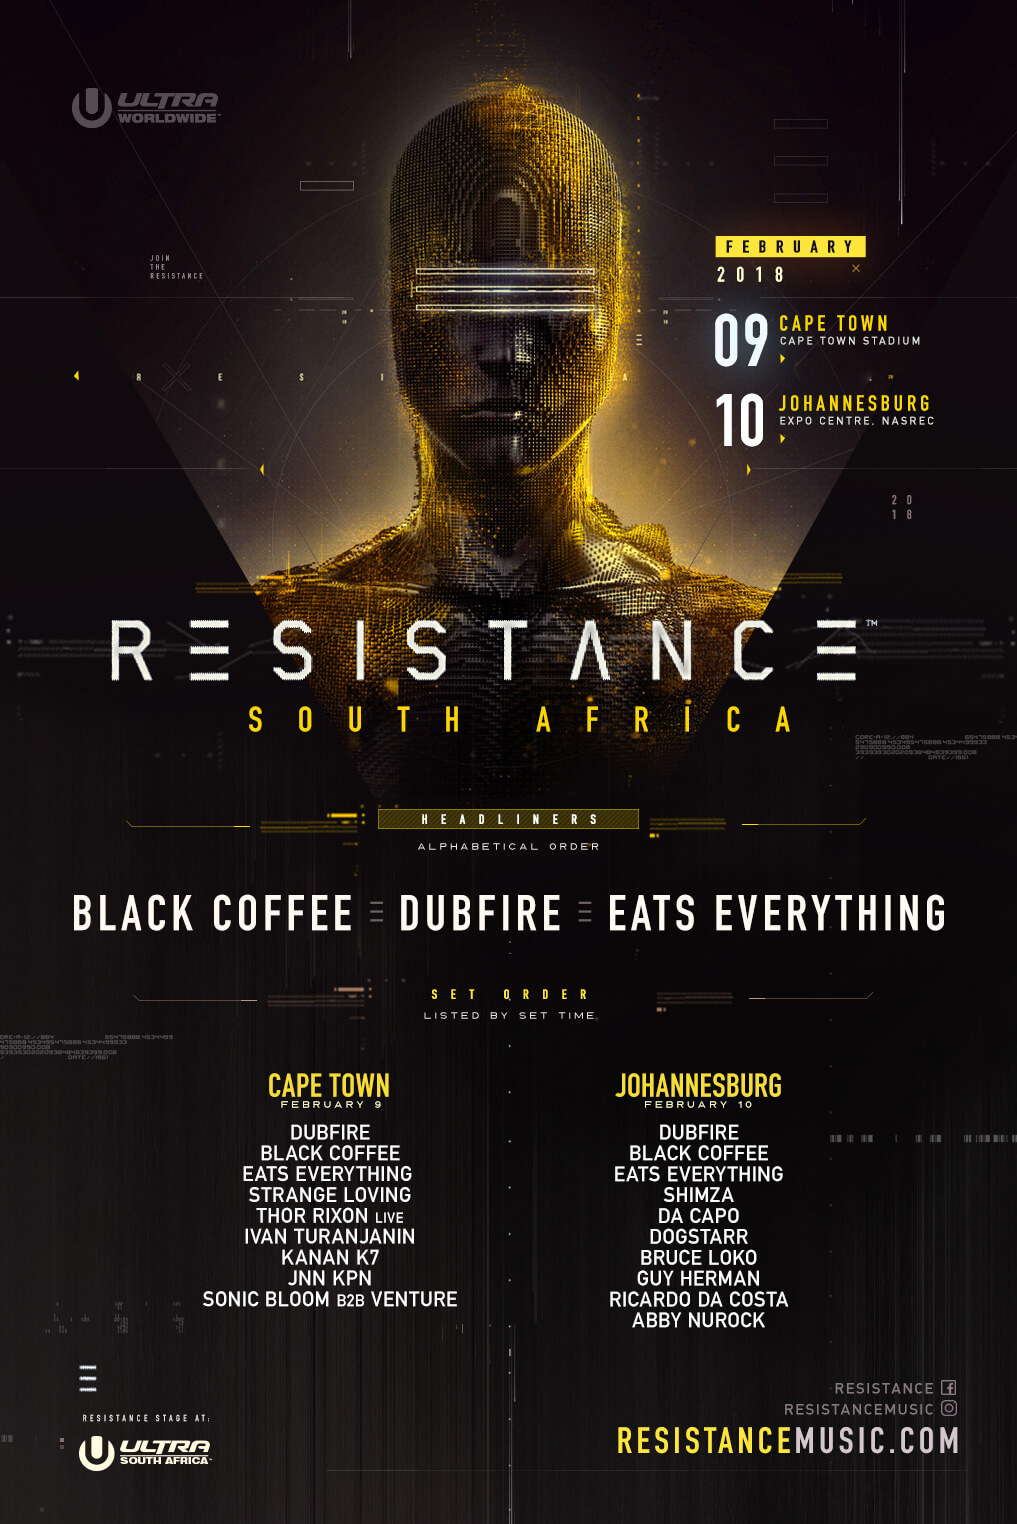 RESISTANCE South Africa